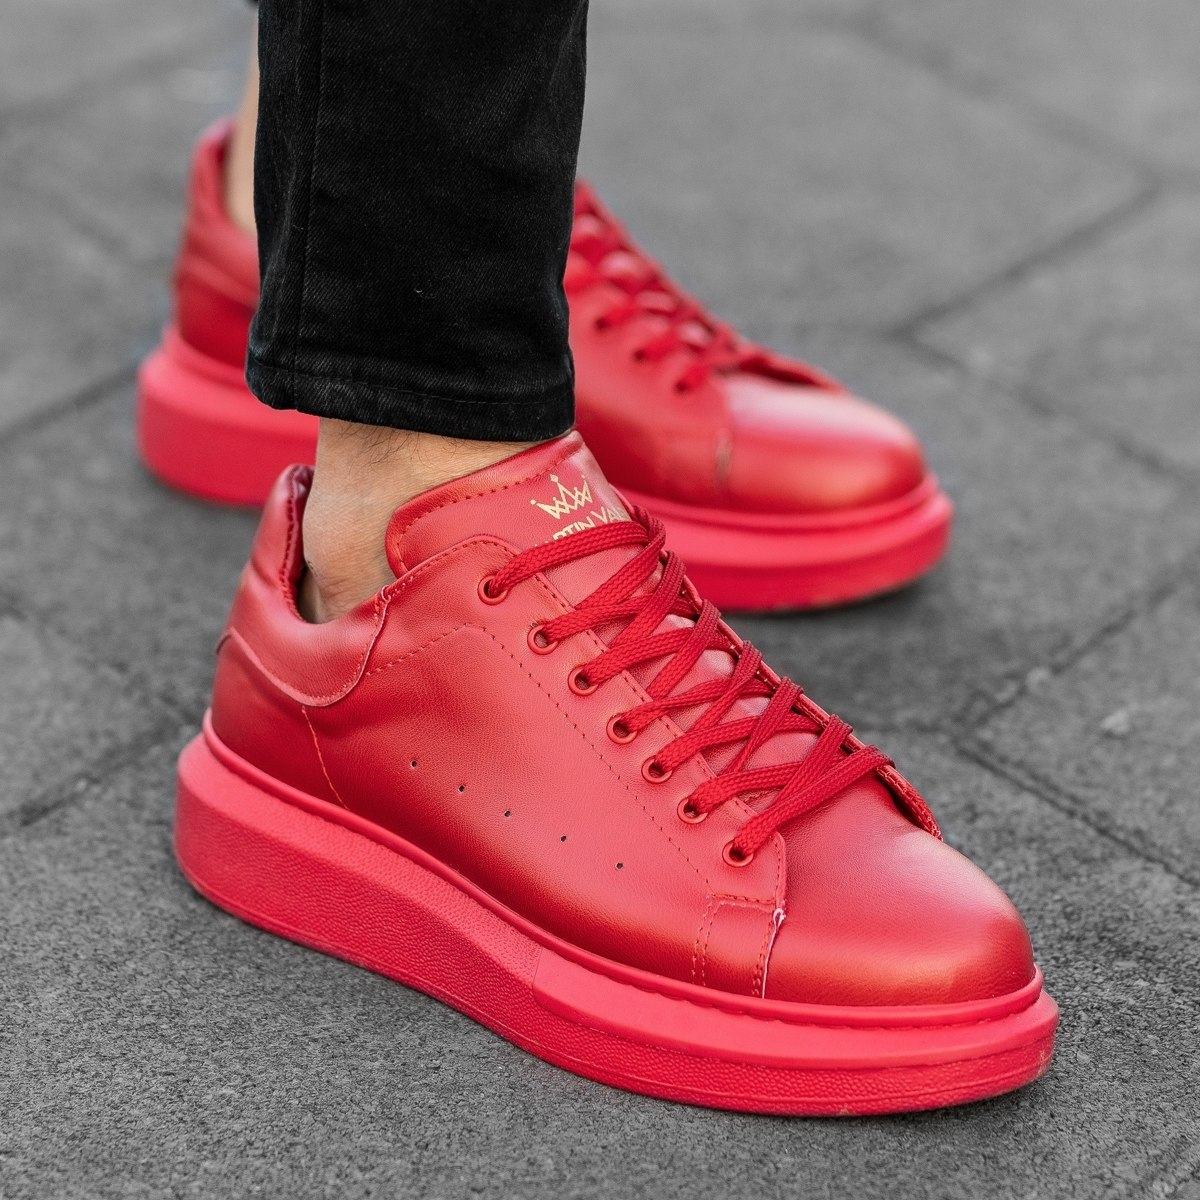 Hype Sole Sneakers In Full Red